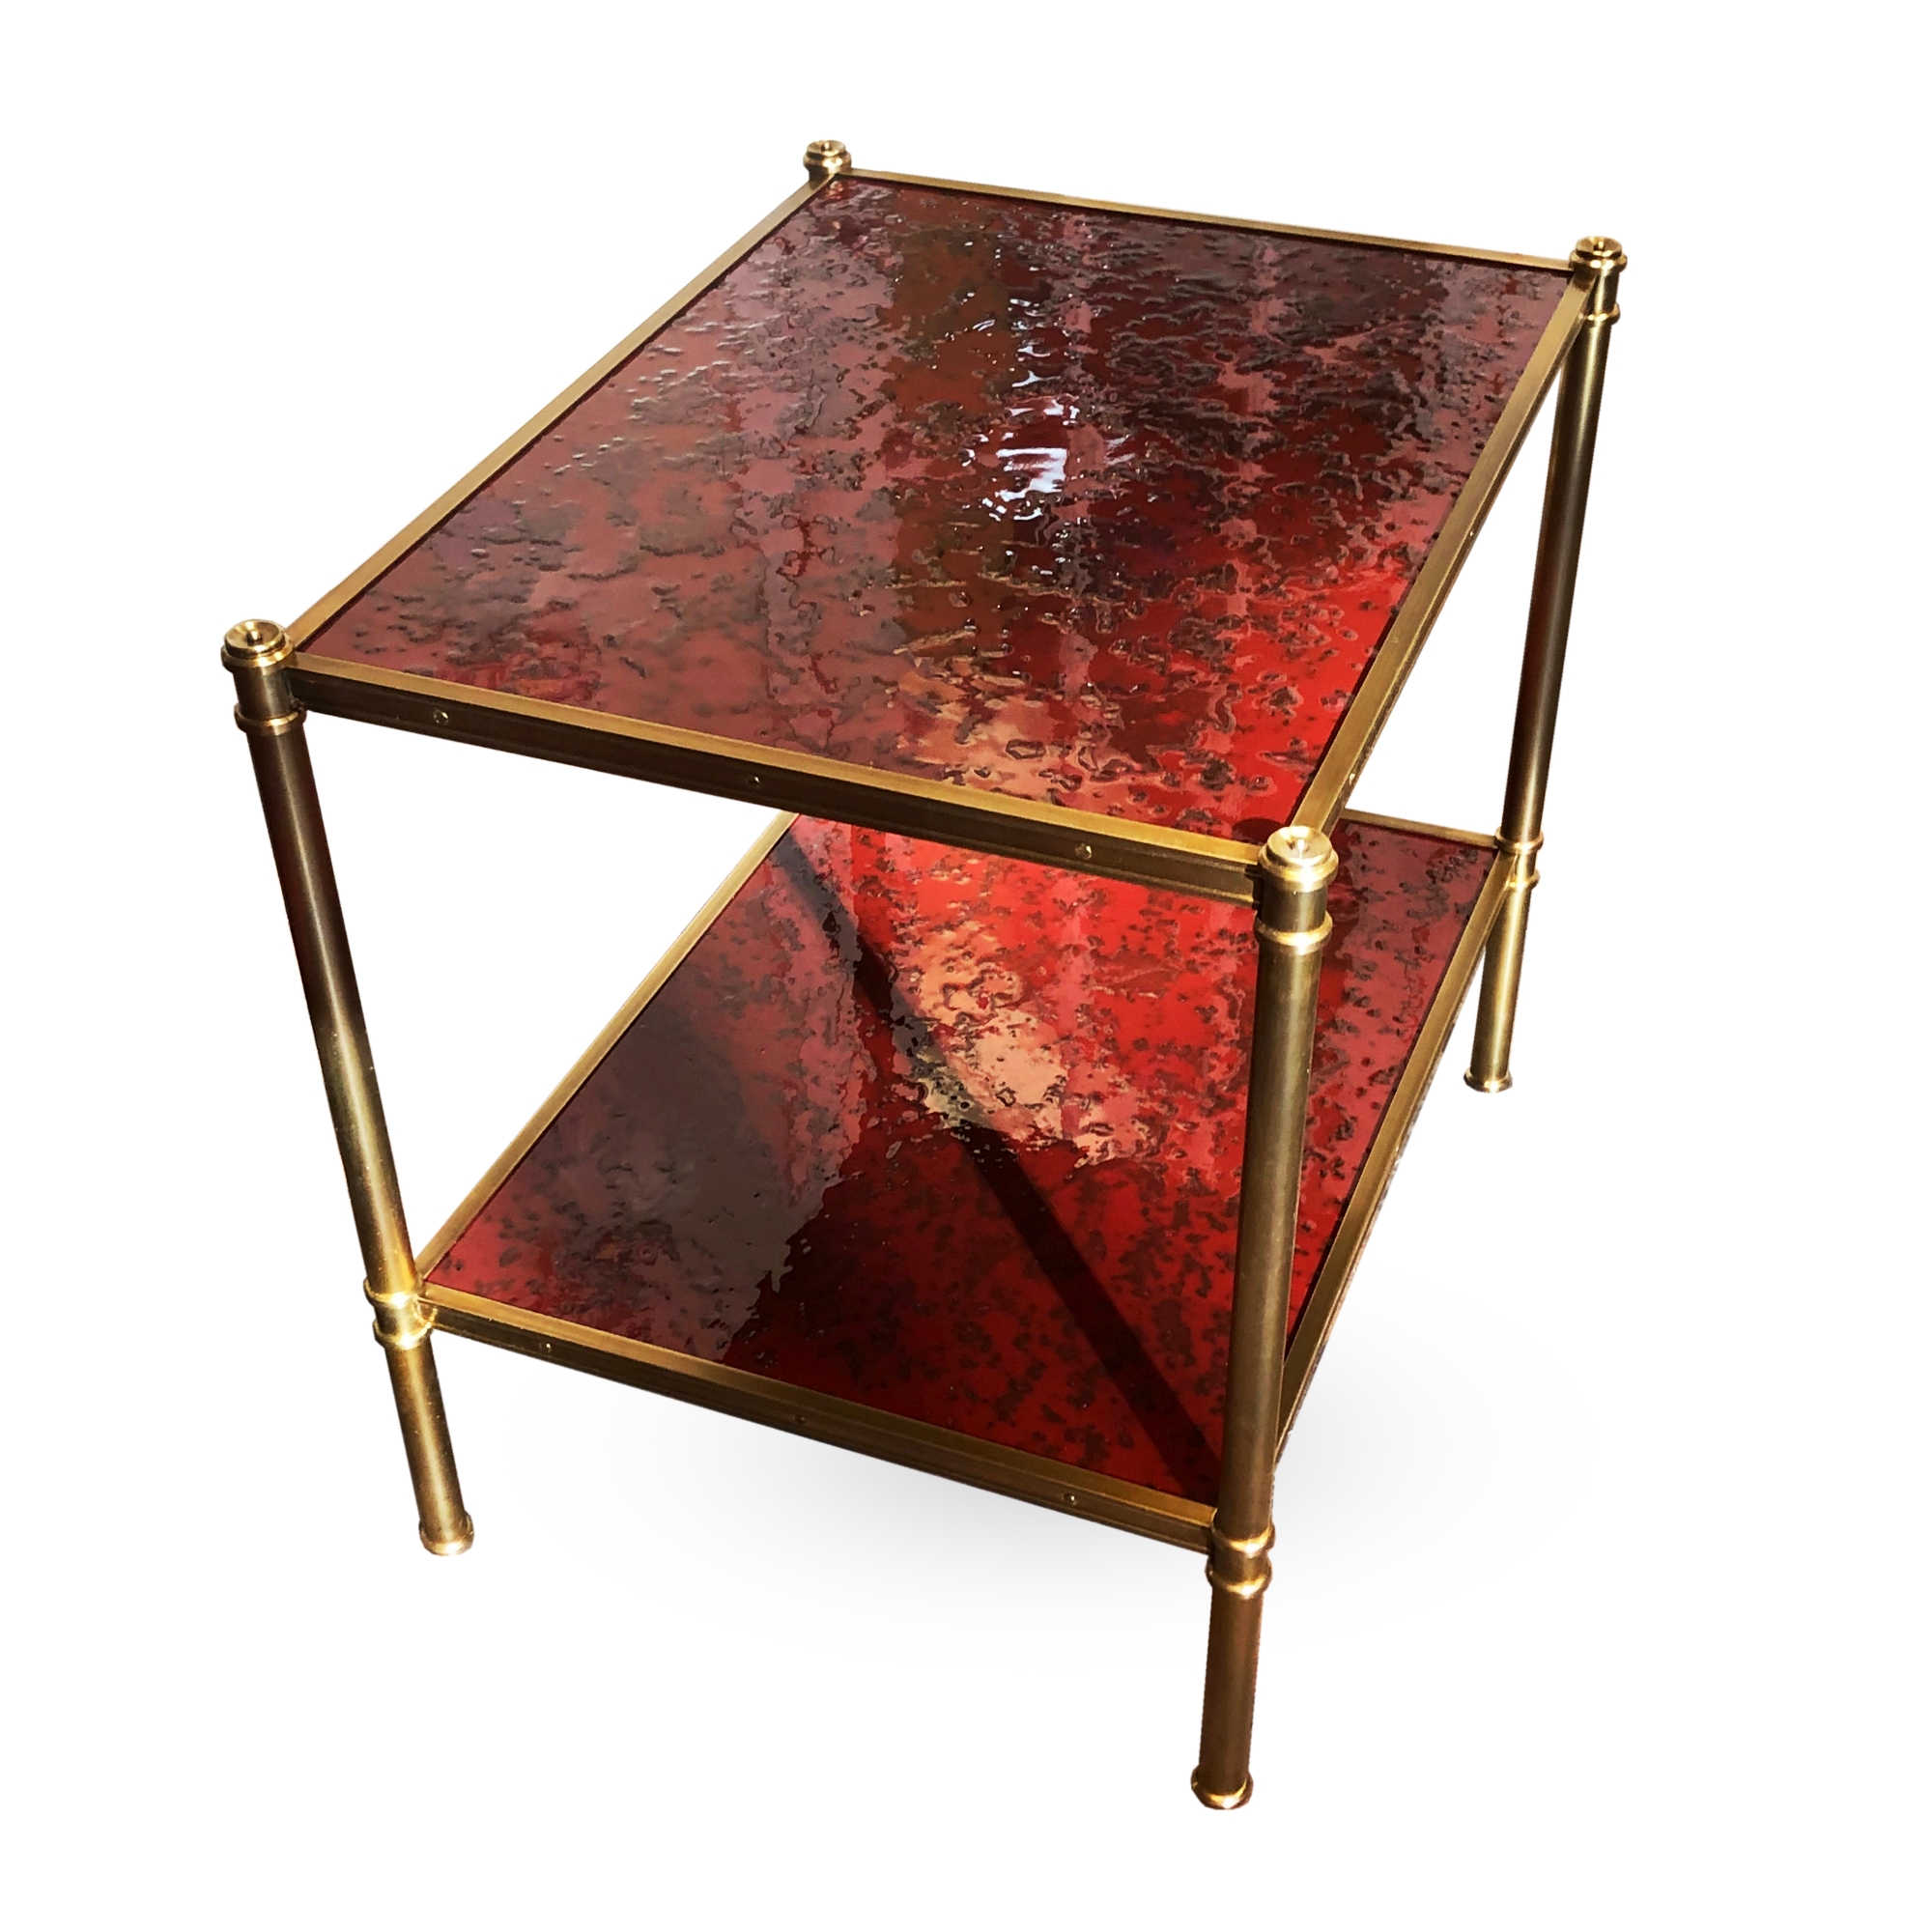 R801ST-Cole-Porter-Side-Table-Custom-Size-Finish-Materials-Bespoke-Victoria-Son-Red-Molten-Gypsum.jpg